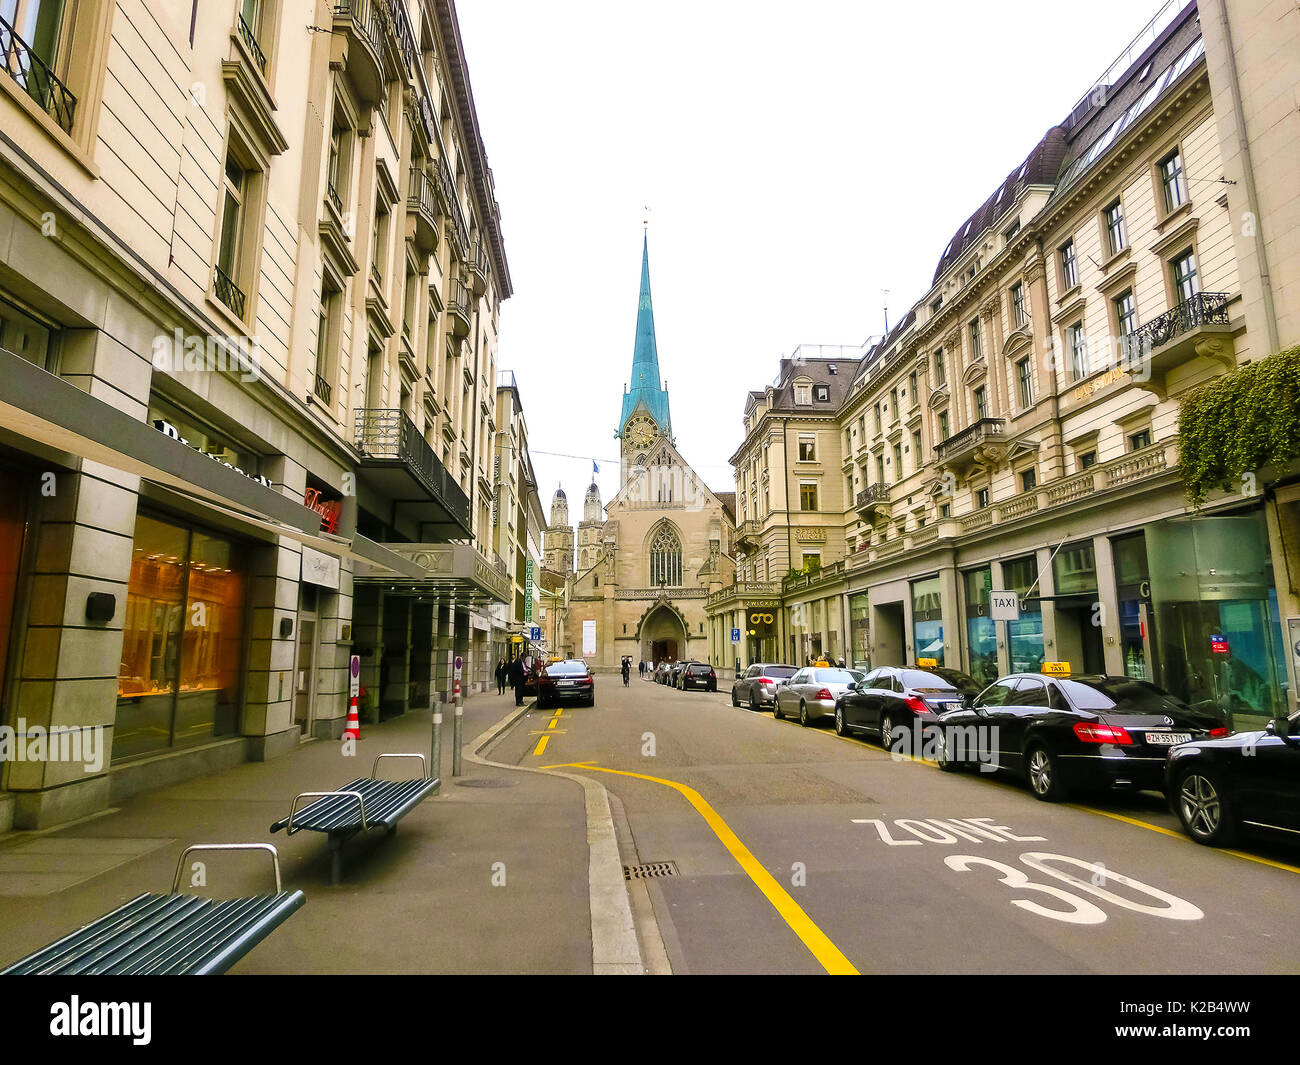 Zurich, Switzerland - May 02, 2017: The city center of Zurich, Switzerland. People on the background - Stock Image